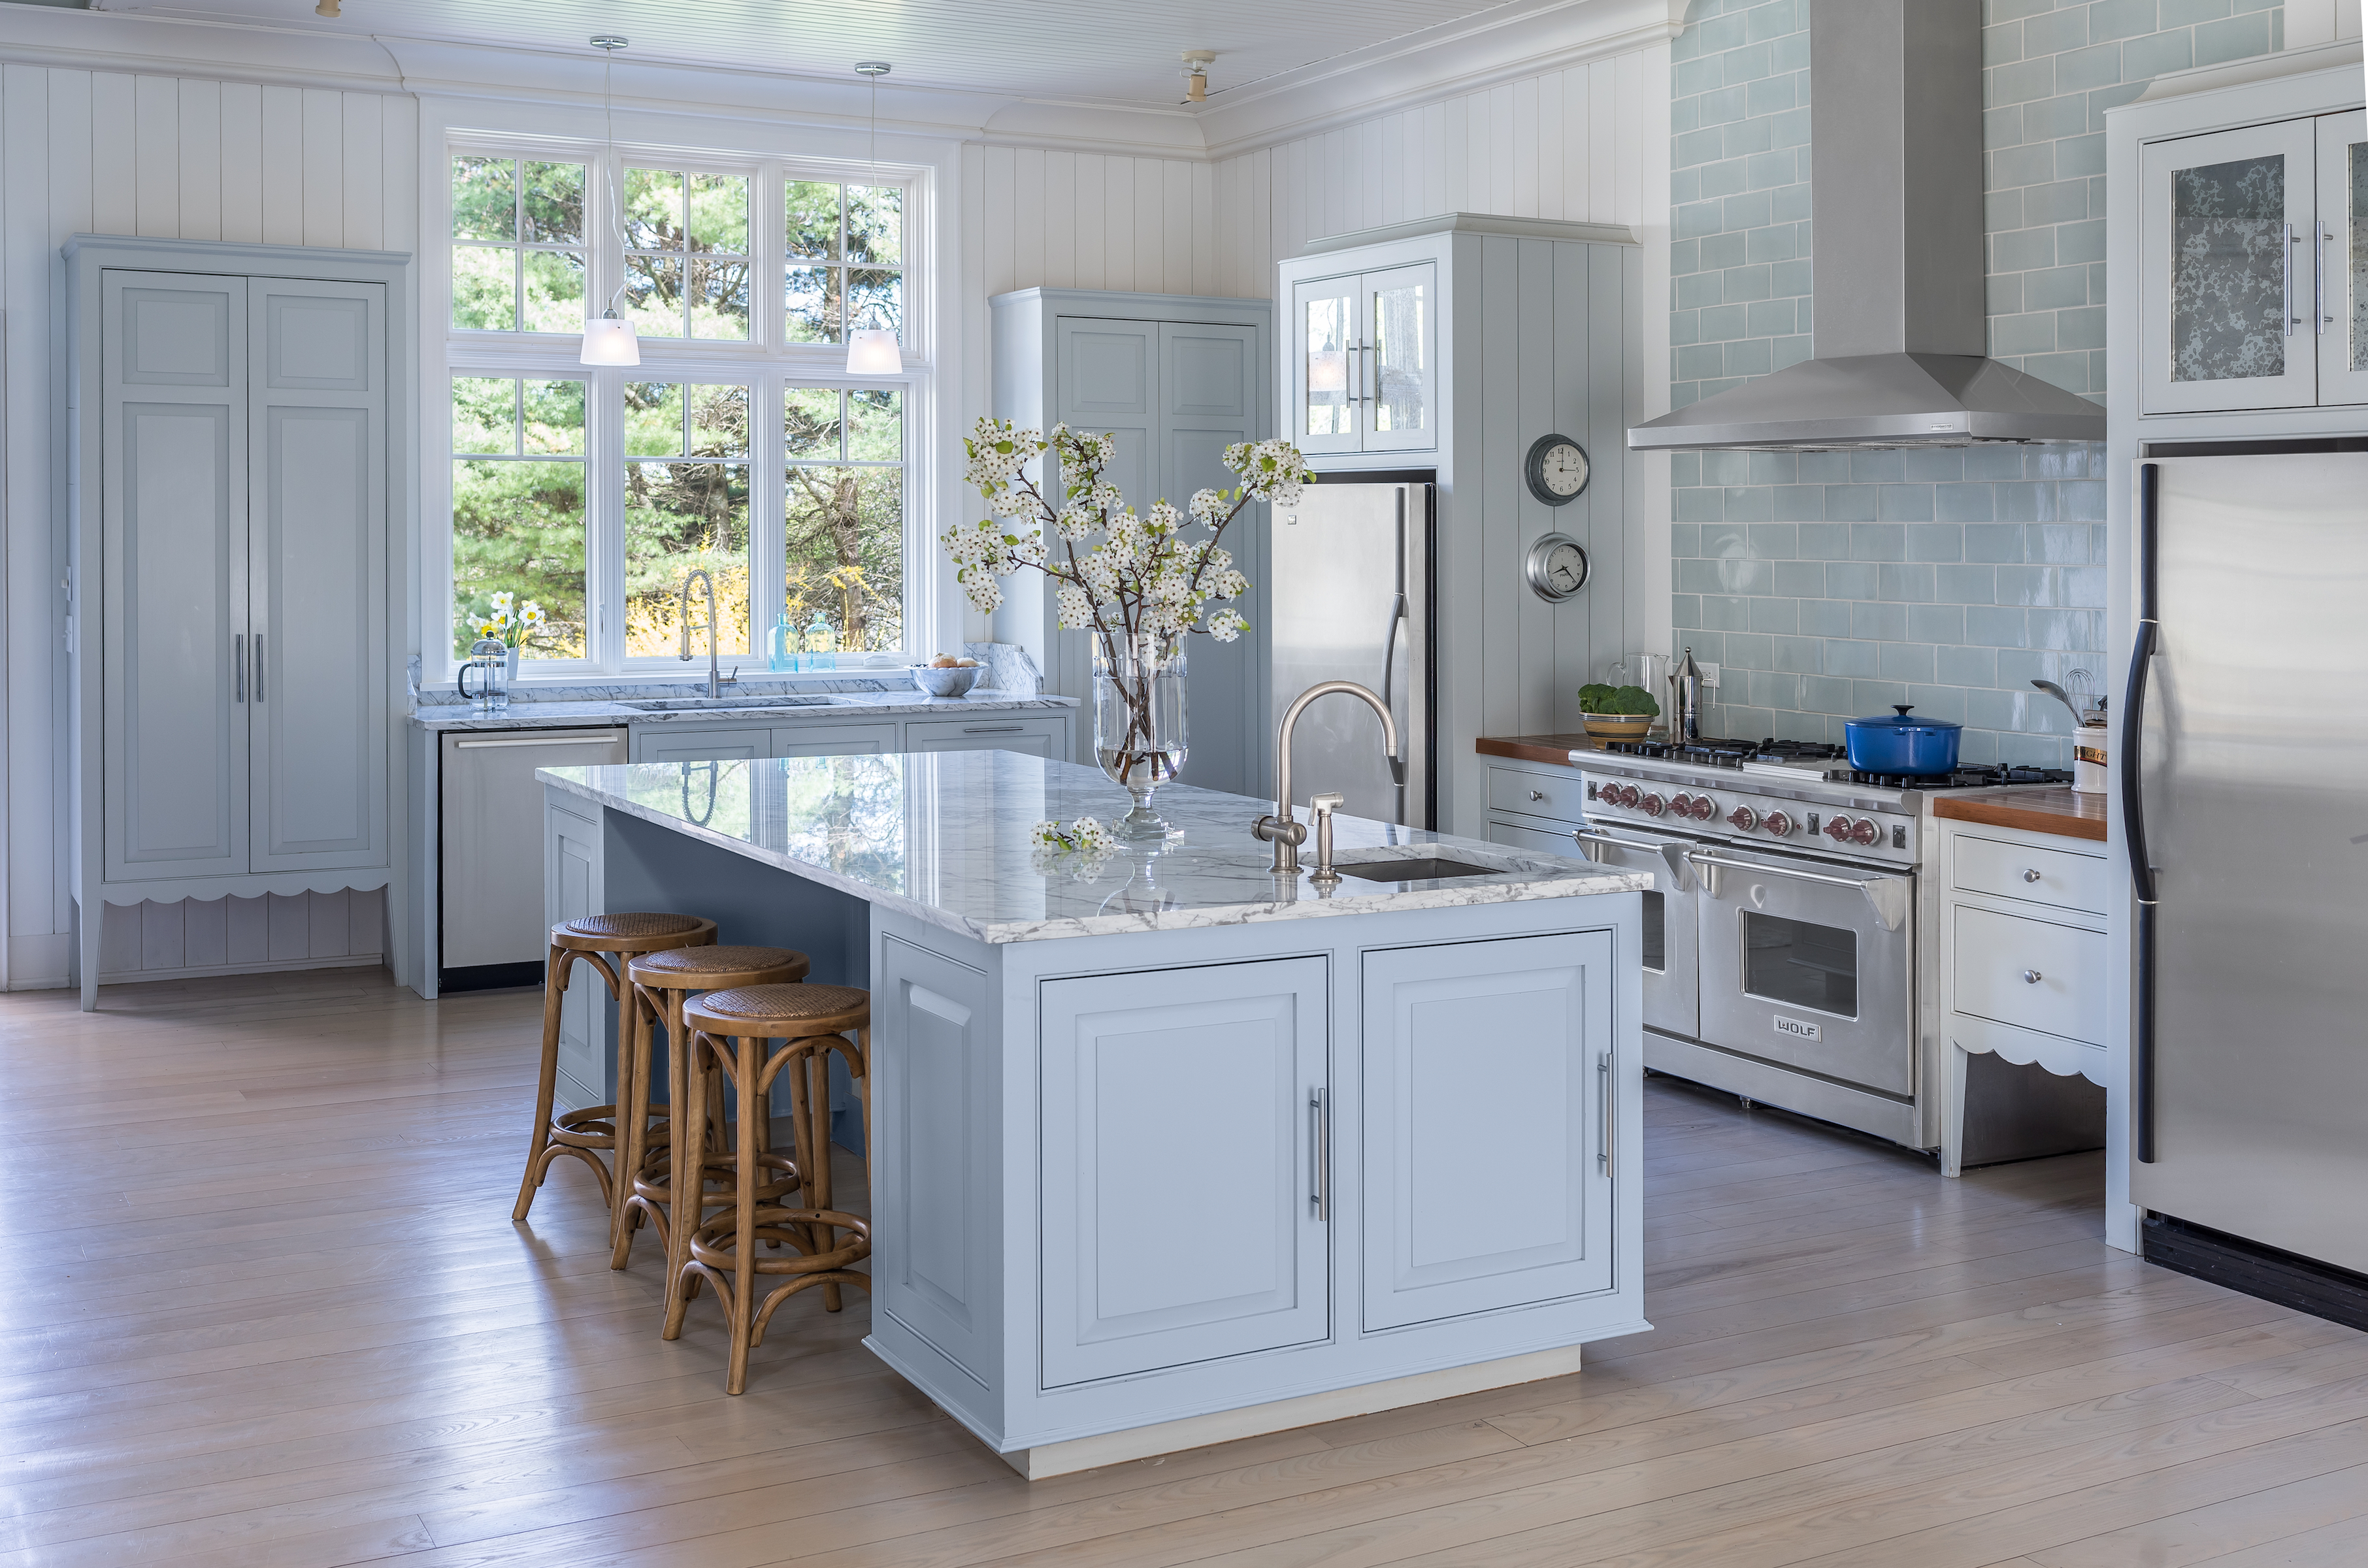 Kitchen at luxe barn, Falmouth. By Banks Design Associates Ltd.